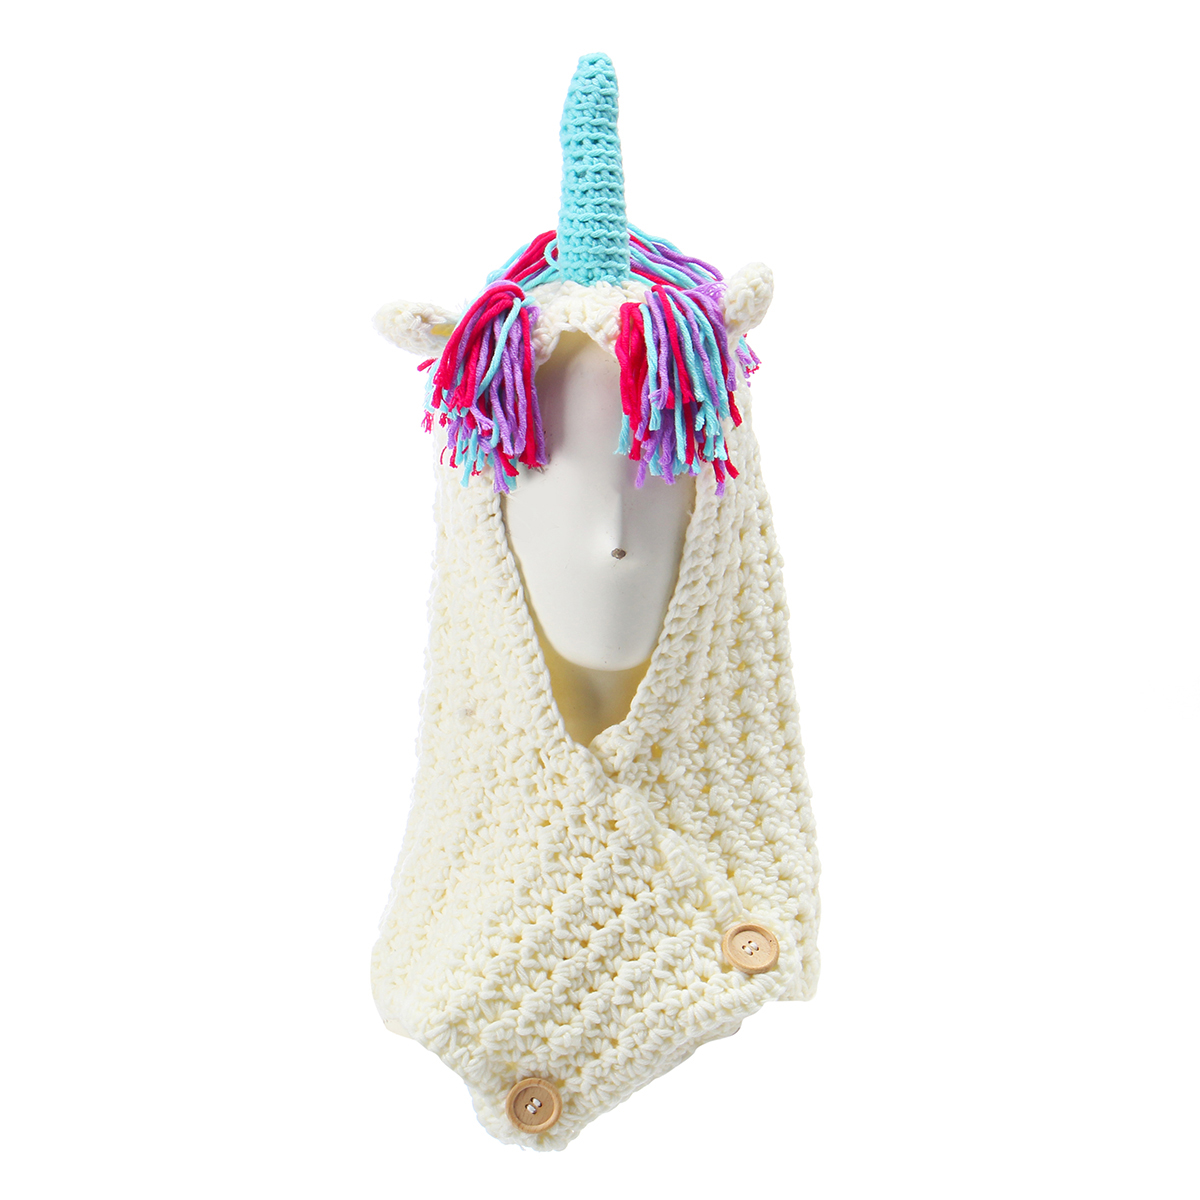 Unicorn Winter Pink Kintted Hat Hooded Scarf Earflap Knitted Cap Xmas Gift Kids / Boy / Girl